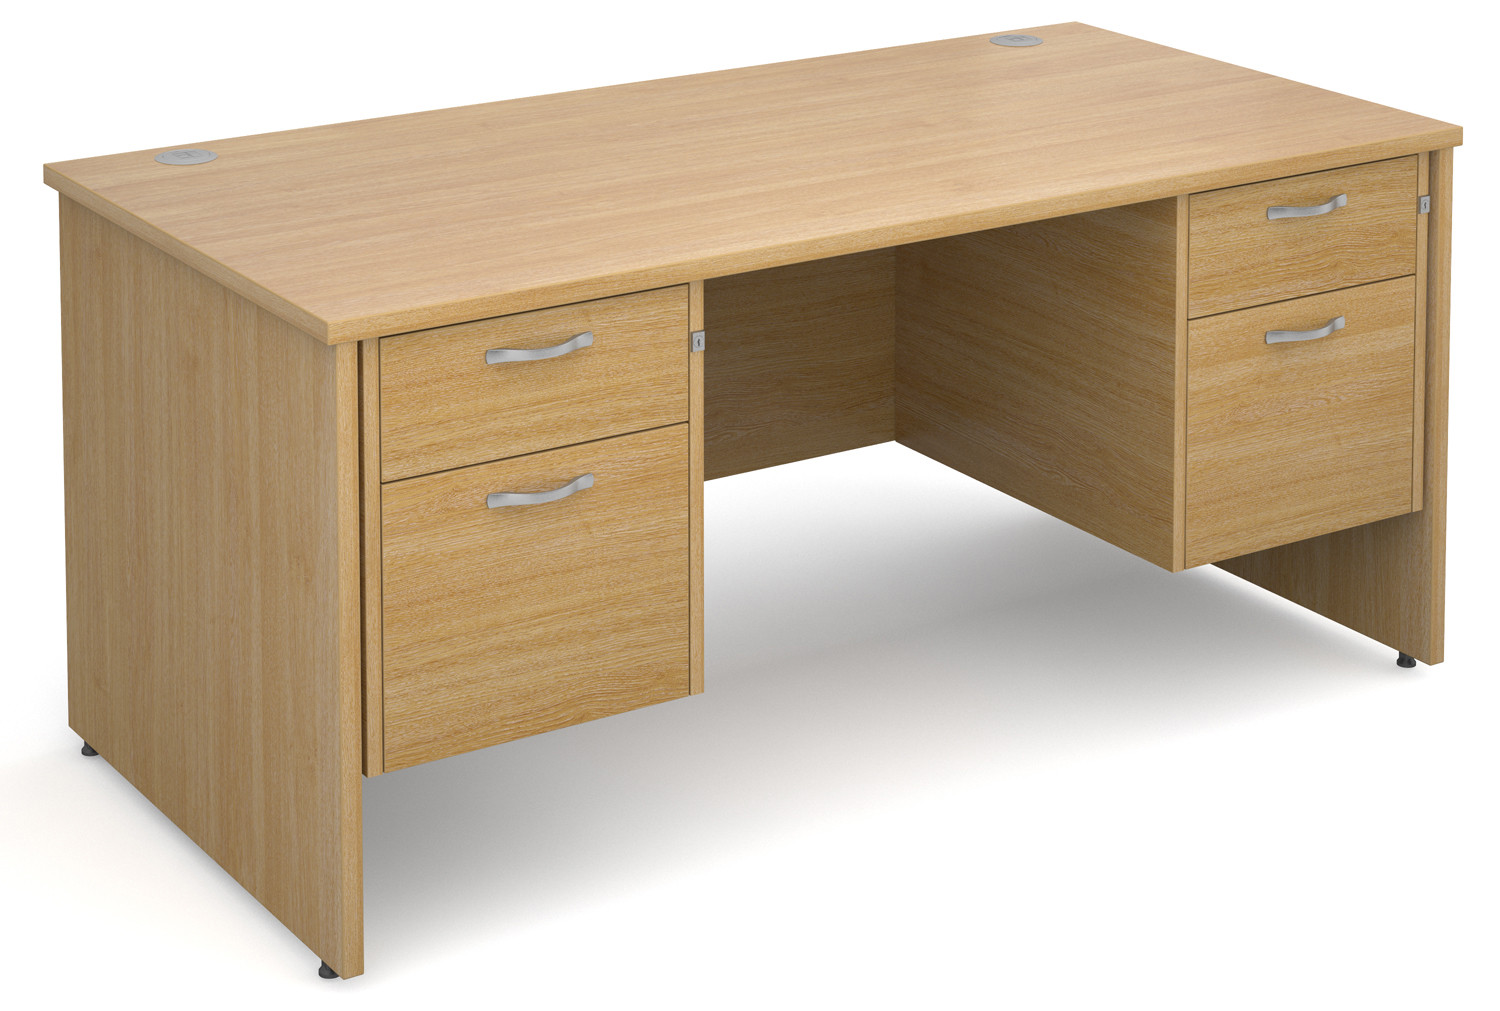 Value Line Deluxe Panel End Desk 2+2 Drawers